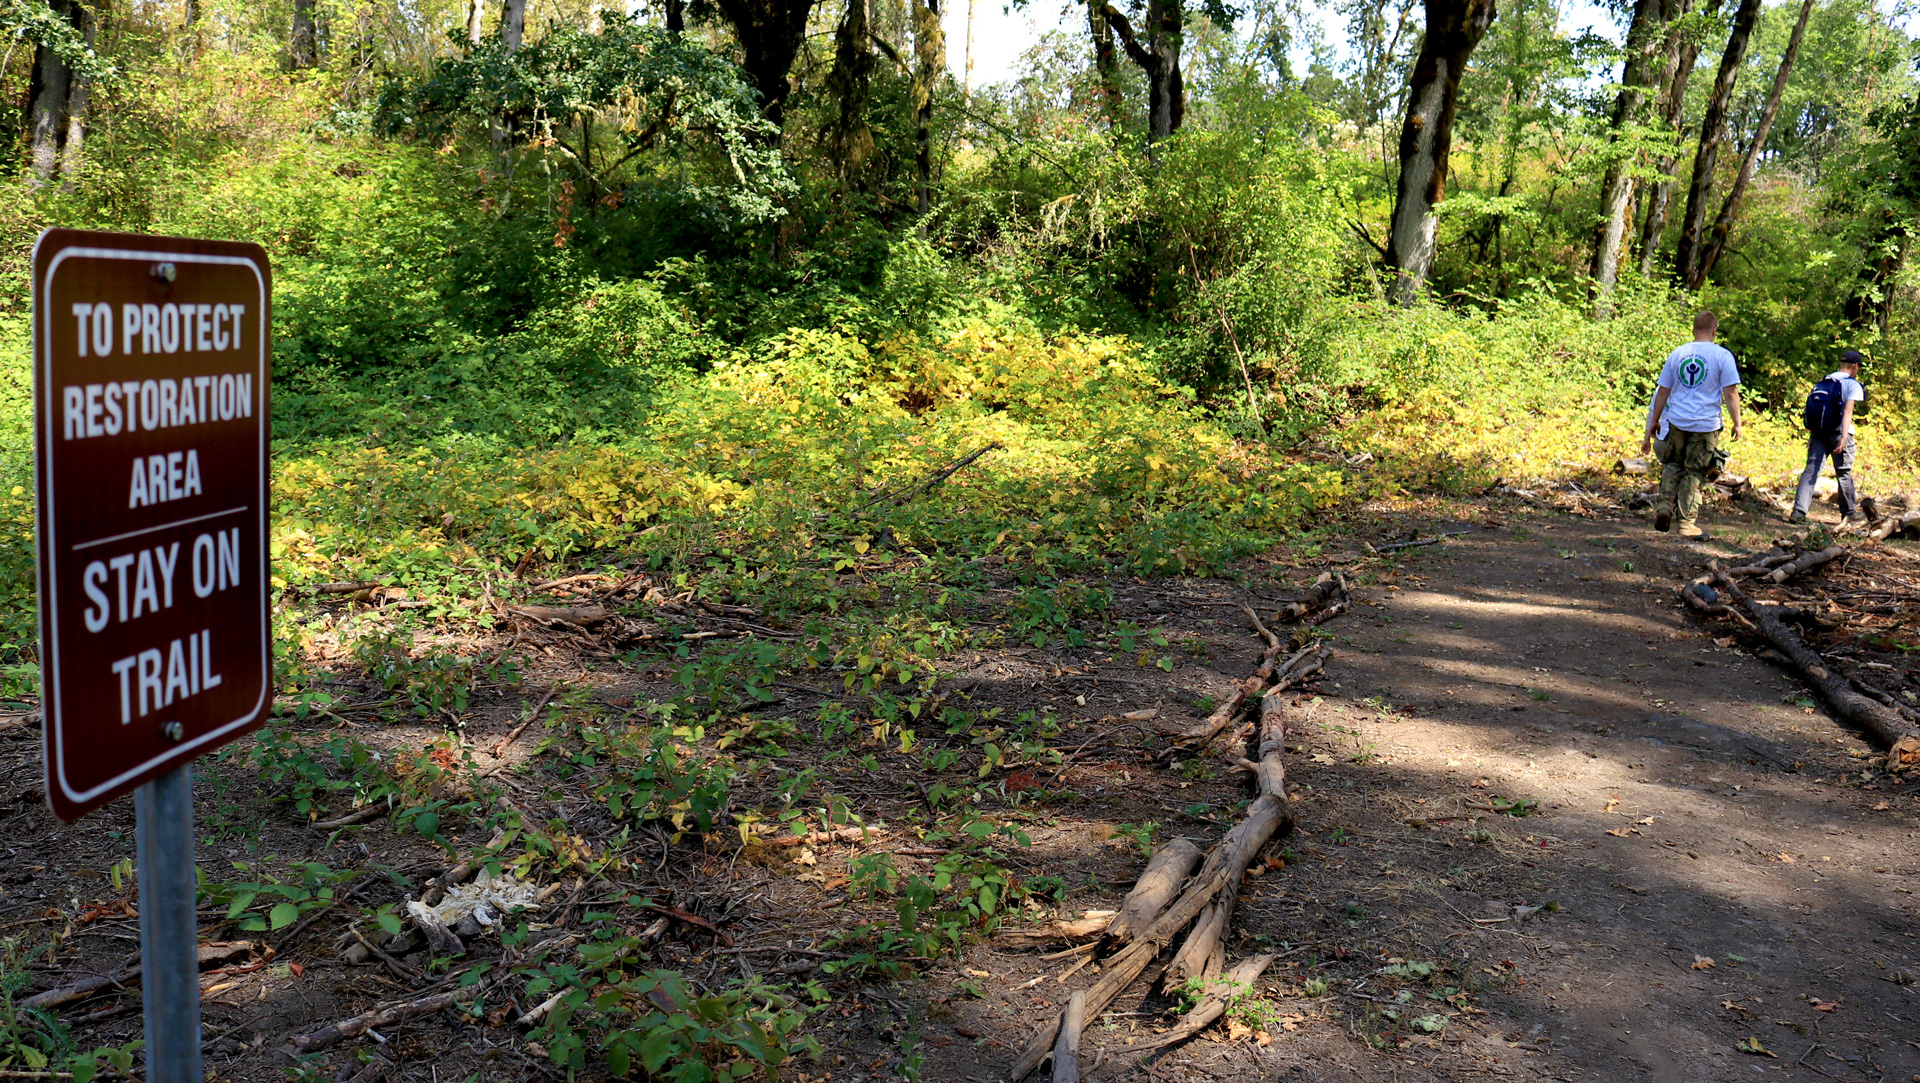 The process of restoring the oak woodland habitat at Ridgefield NWR's Carty Unit has just begun, thanks to the efforts of our many partners, including our dedicated YCC crew.